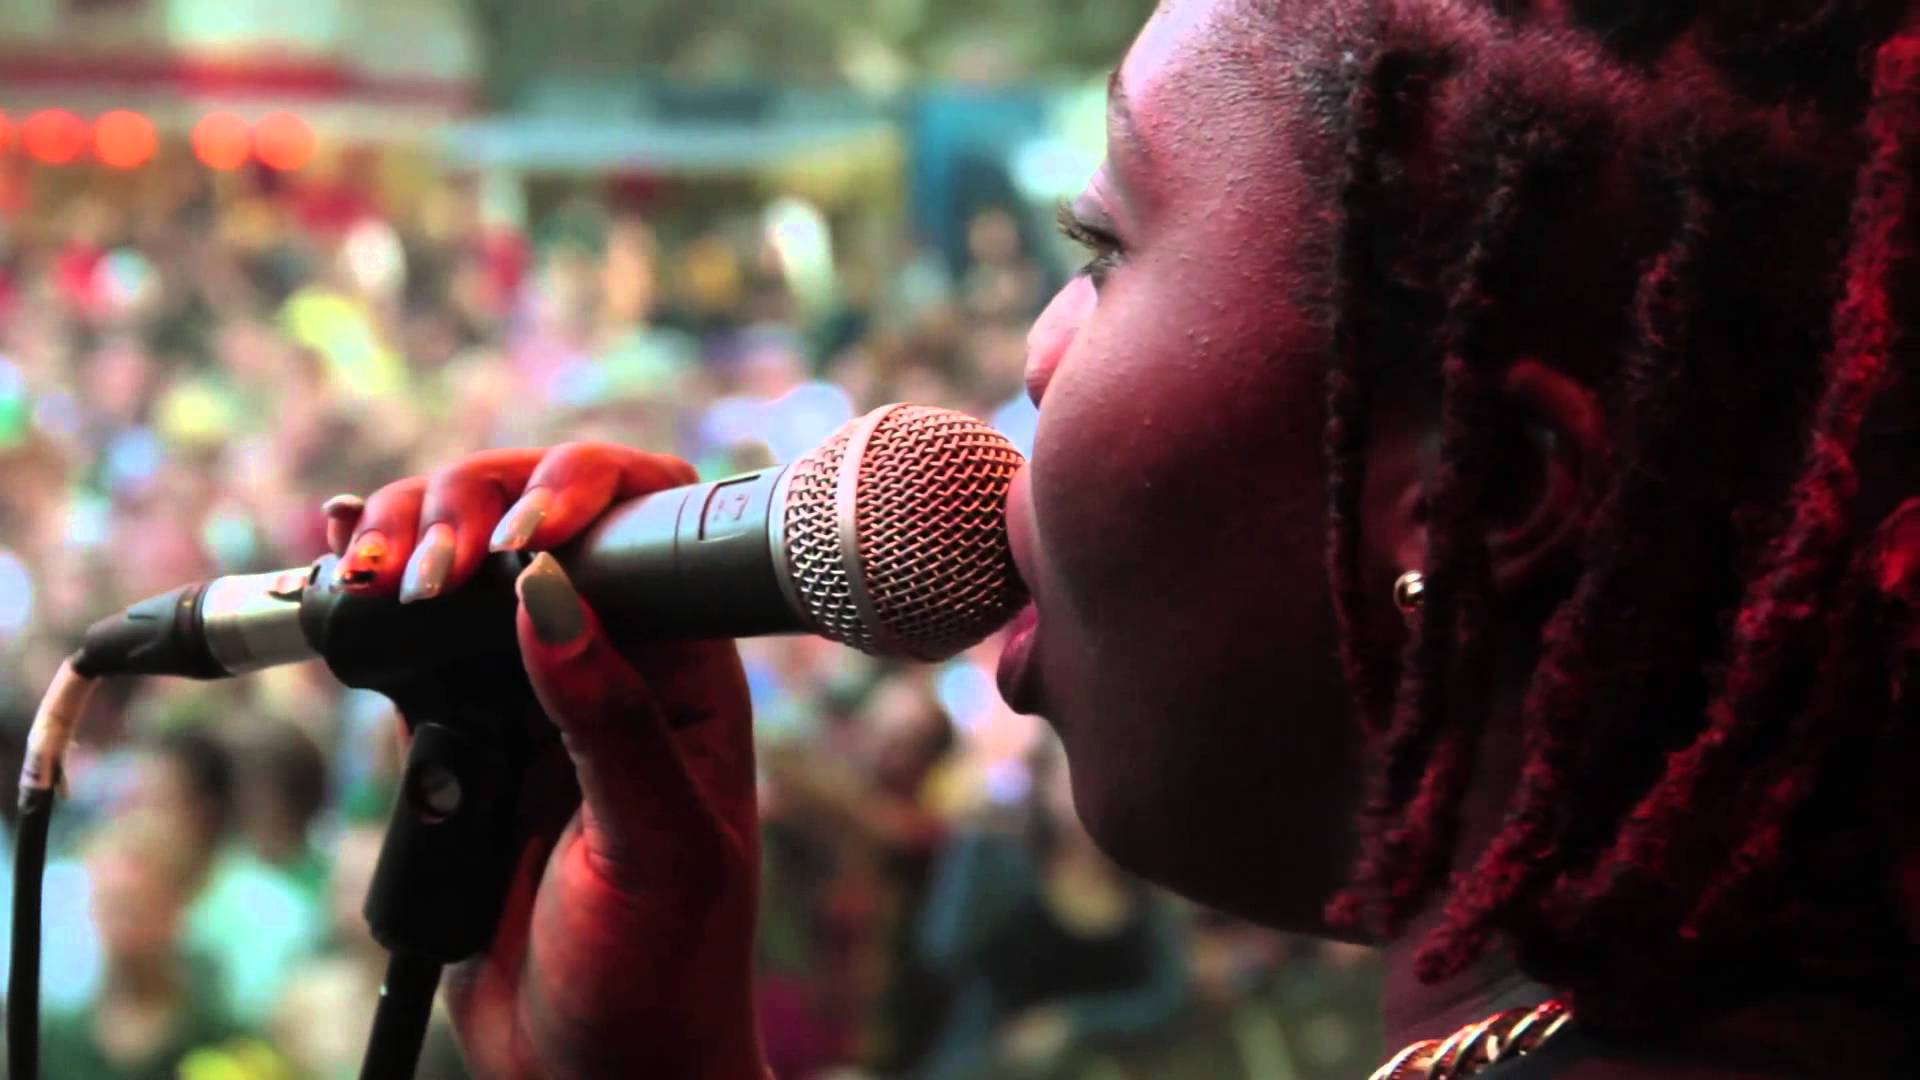 Documentary: Ruhr Reggae Summer in Mülheim 2013 [2/25/2014]